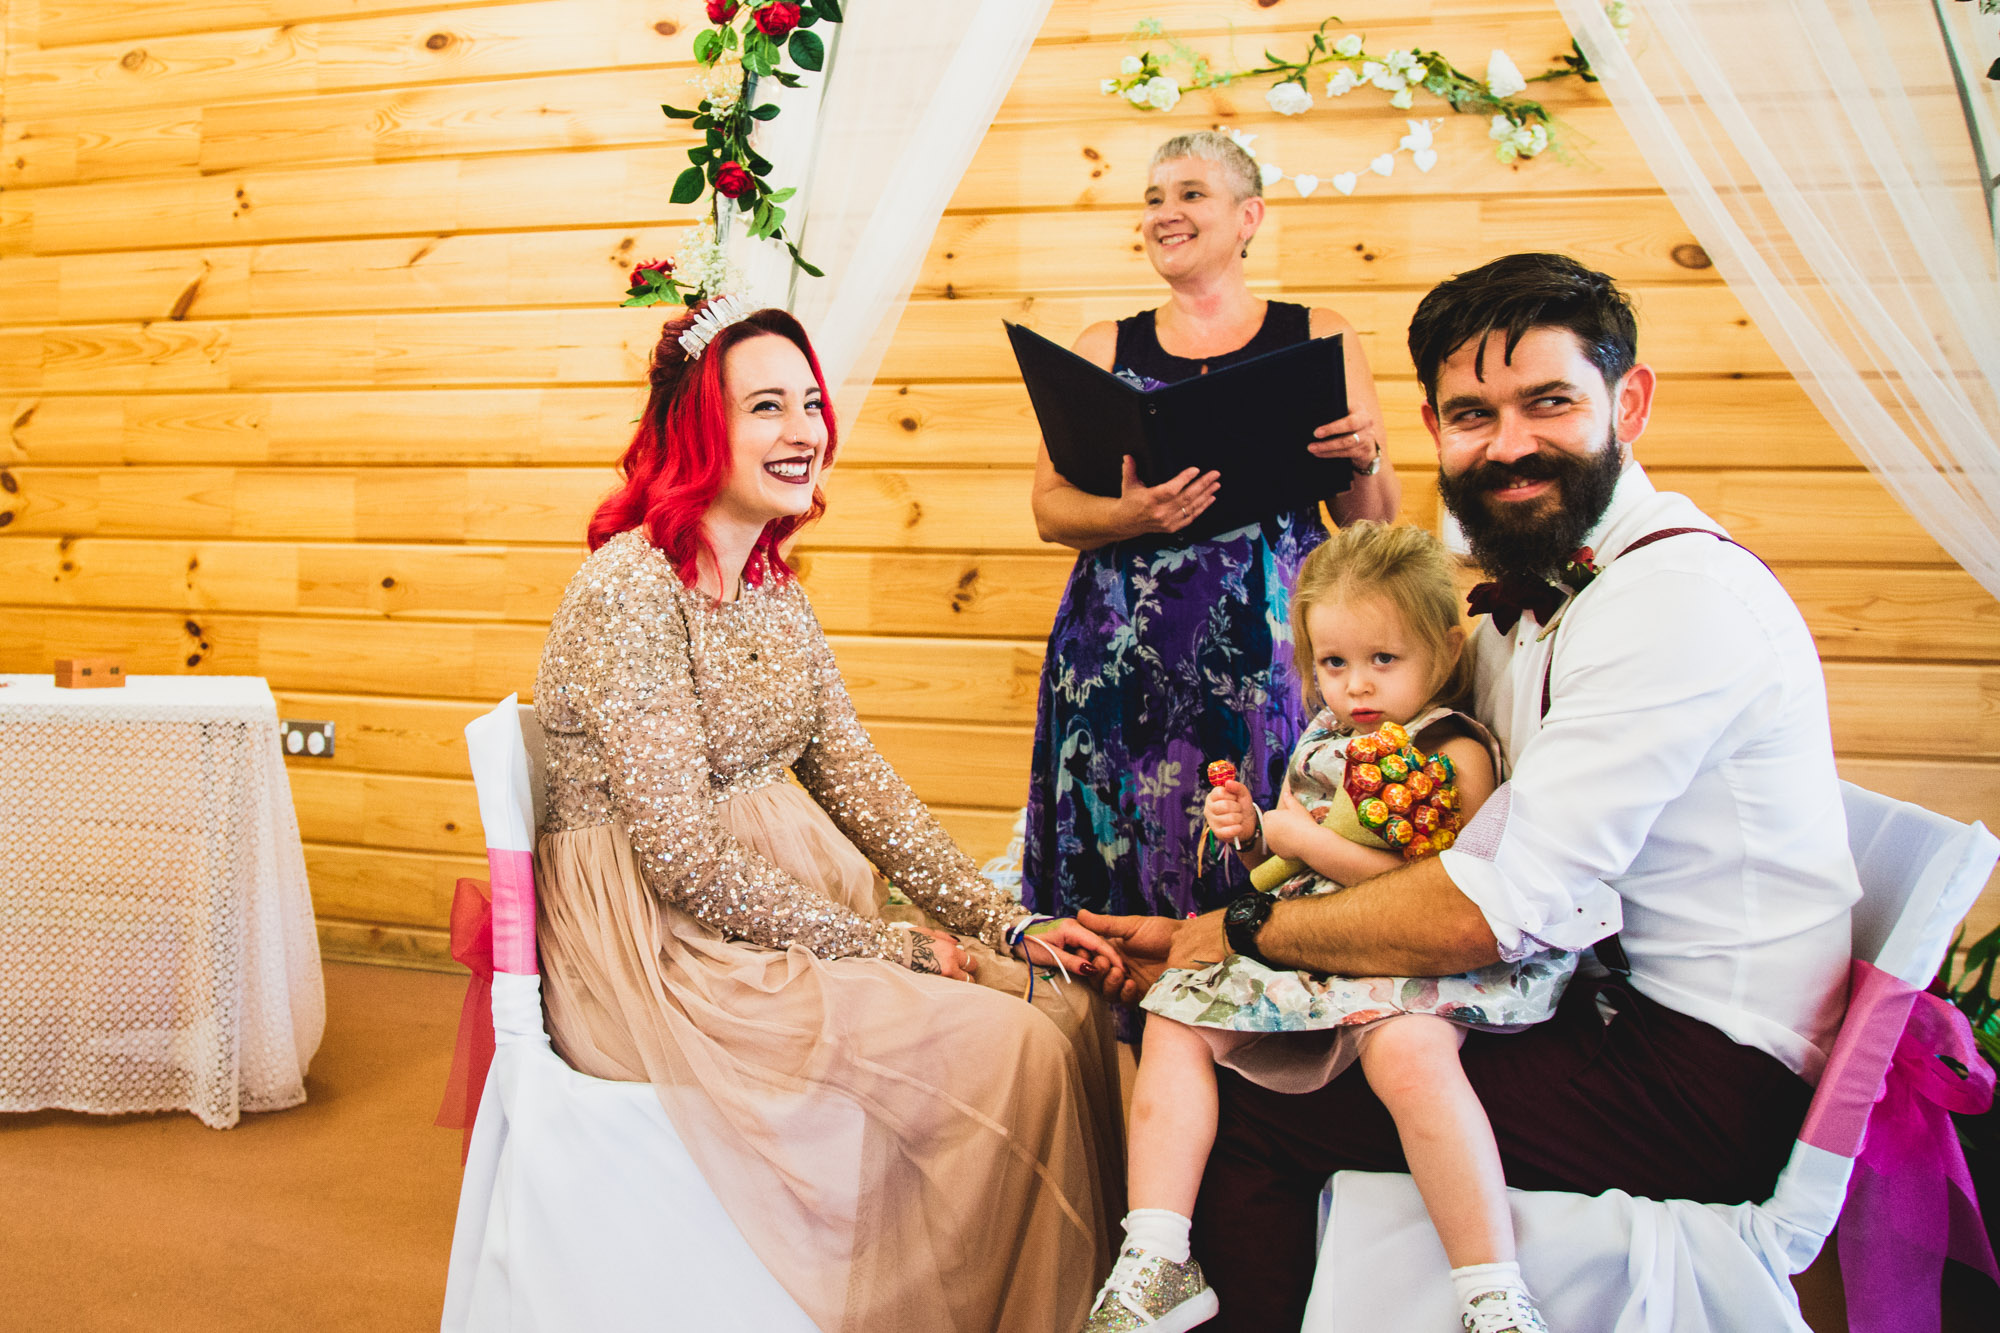 Bride and Groom with daughter at wedding ceremony